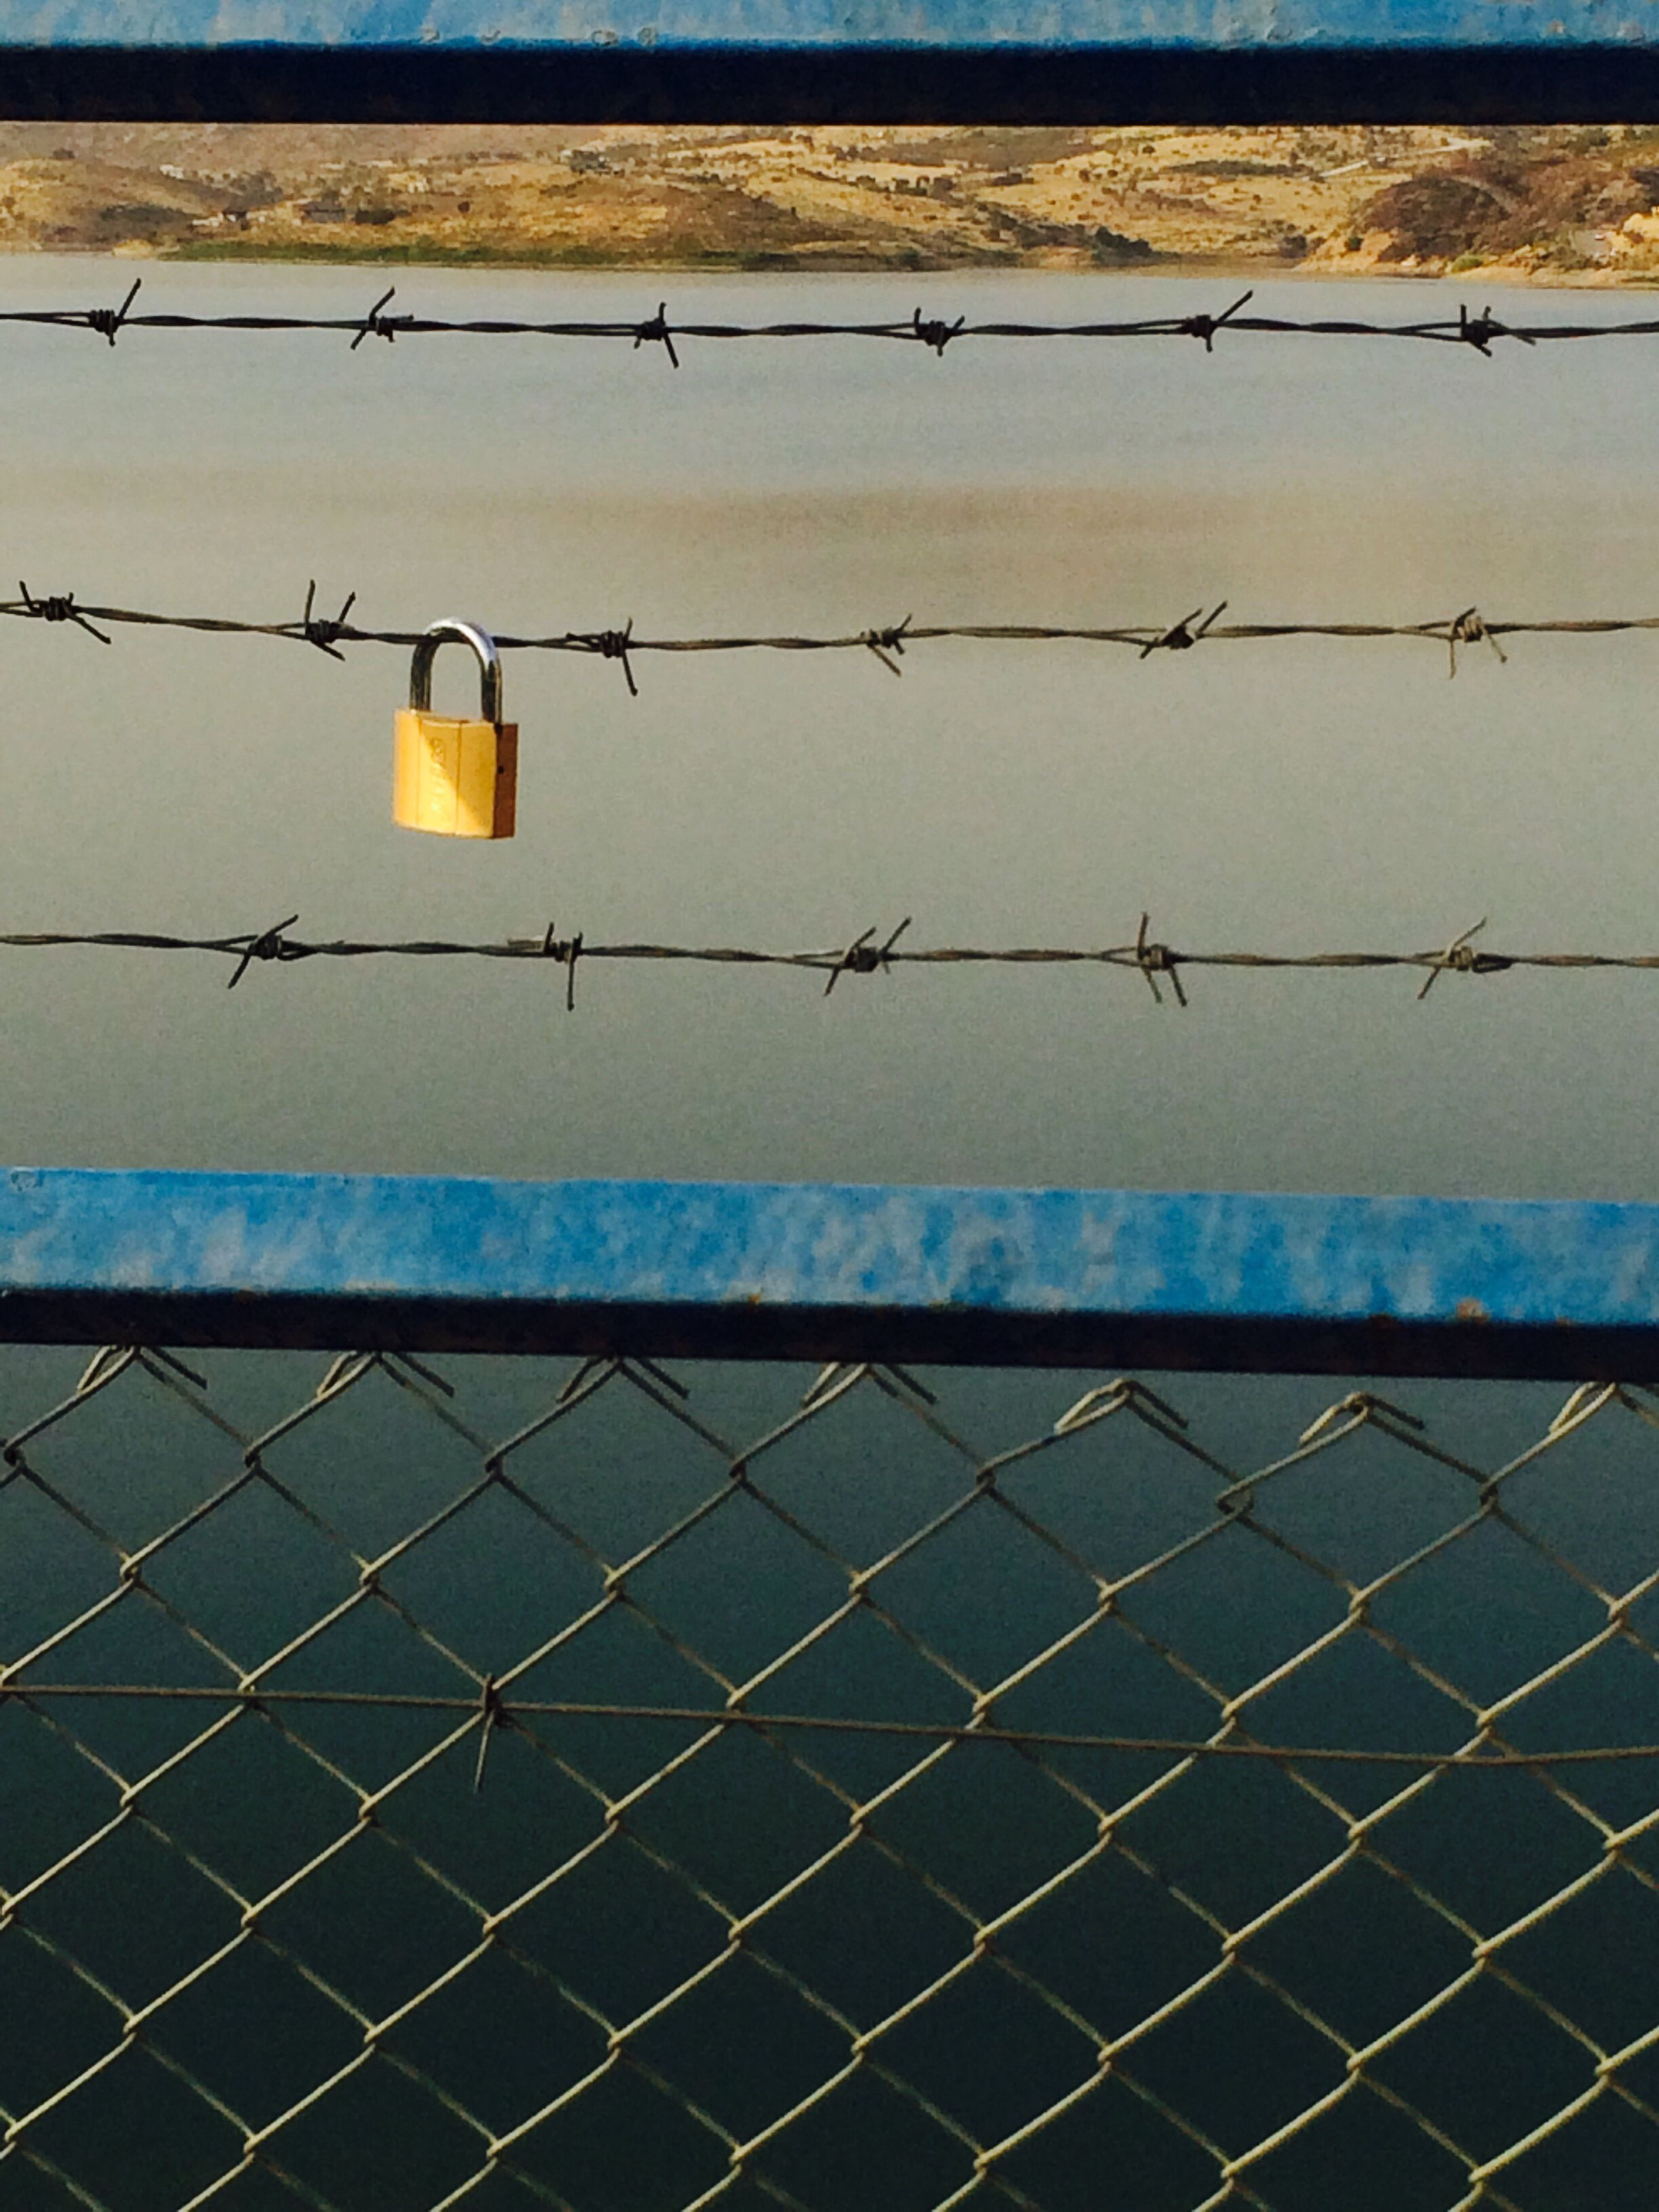 safety, protection, security, chainlink fence, fence, day, sky, blue, outdoors, tranquility, chain link fence, tranquil scene, no people